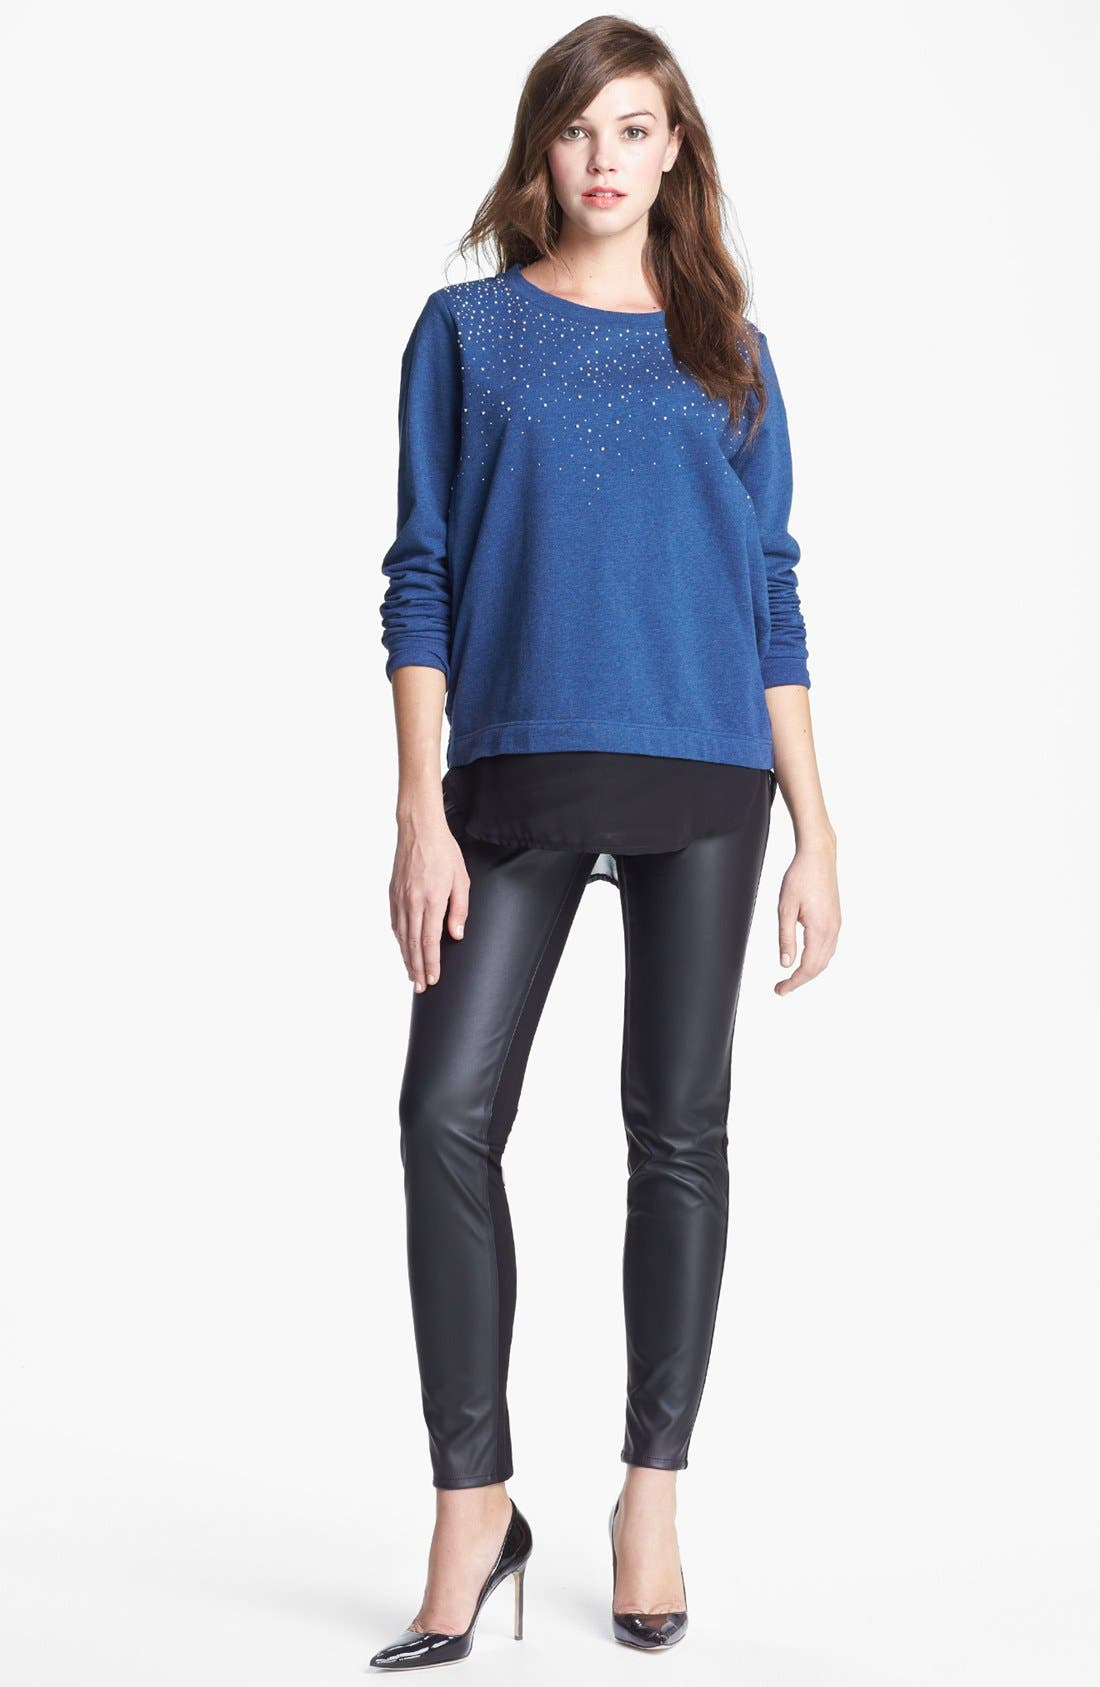 Main Image - Two by Vince Camuto Embellished Chiffon Shirttail Sweatshirt